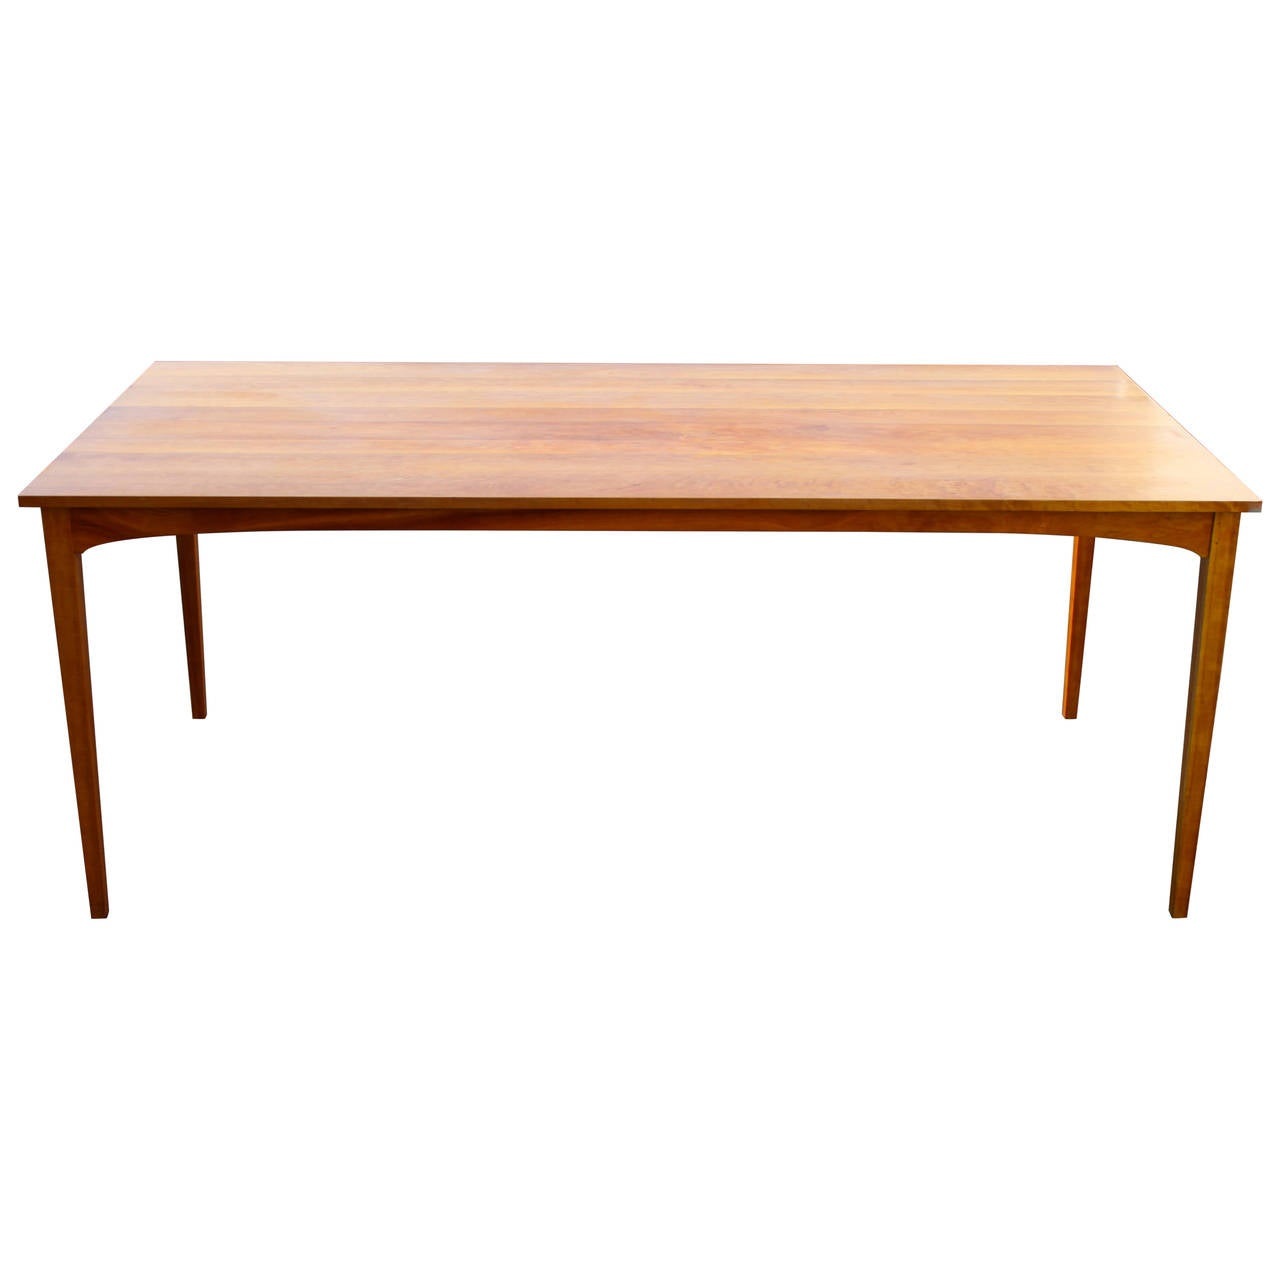 Thomas Moser Dining Or Conference Table Built By Rachel R Levesque At 1stdibs